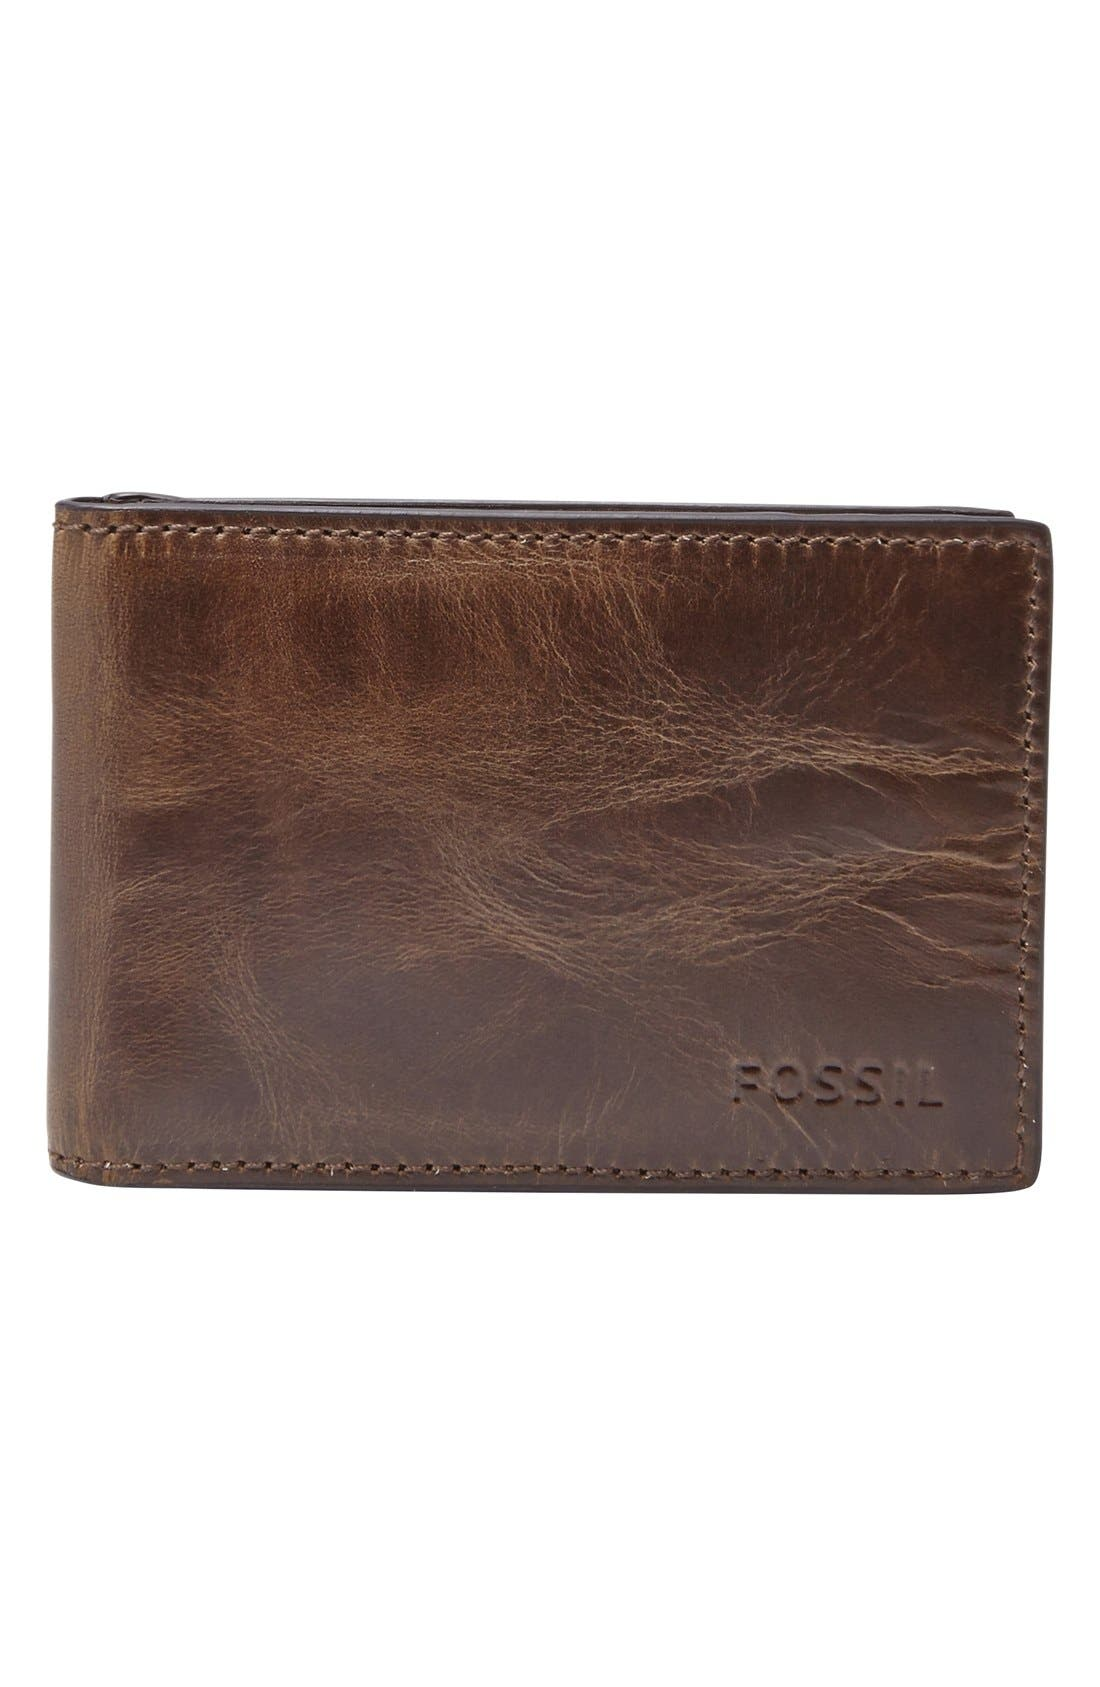 Main Image - Fossil Derrick Leather Money Clip Bifold Wallet